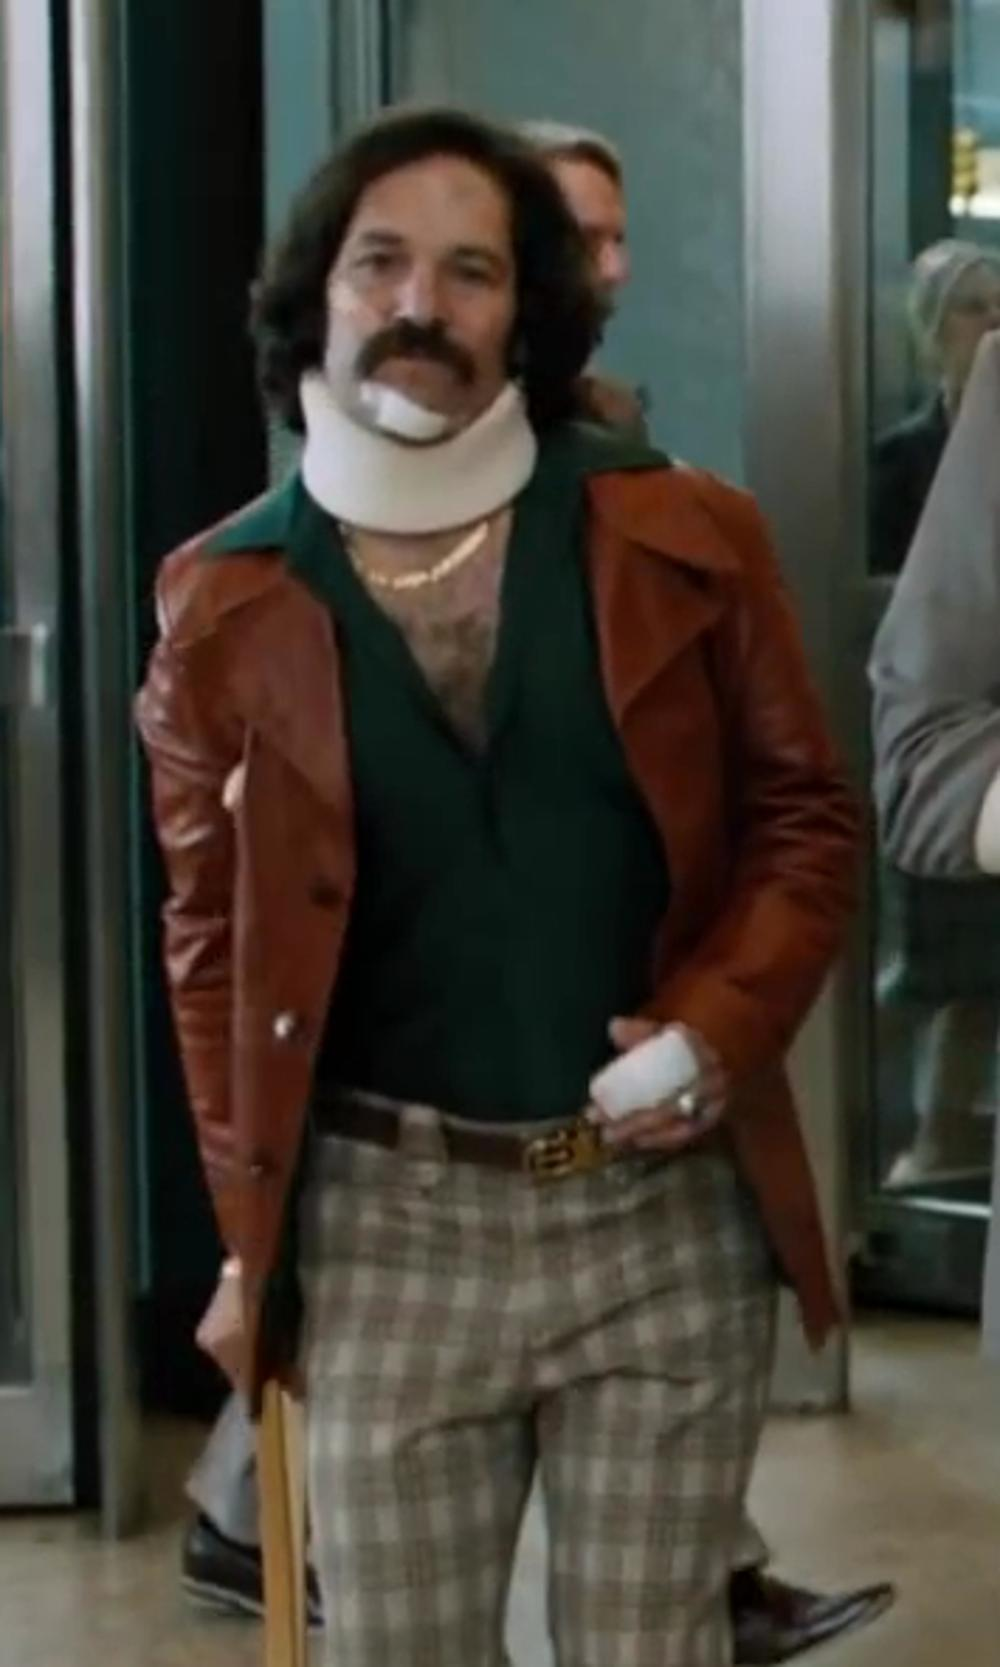 Paul Rudd with John Varvatos Textured Harness on Vachetta Leather in Anchorman 2: The Legend Continues